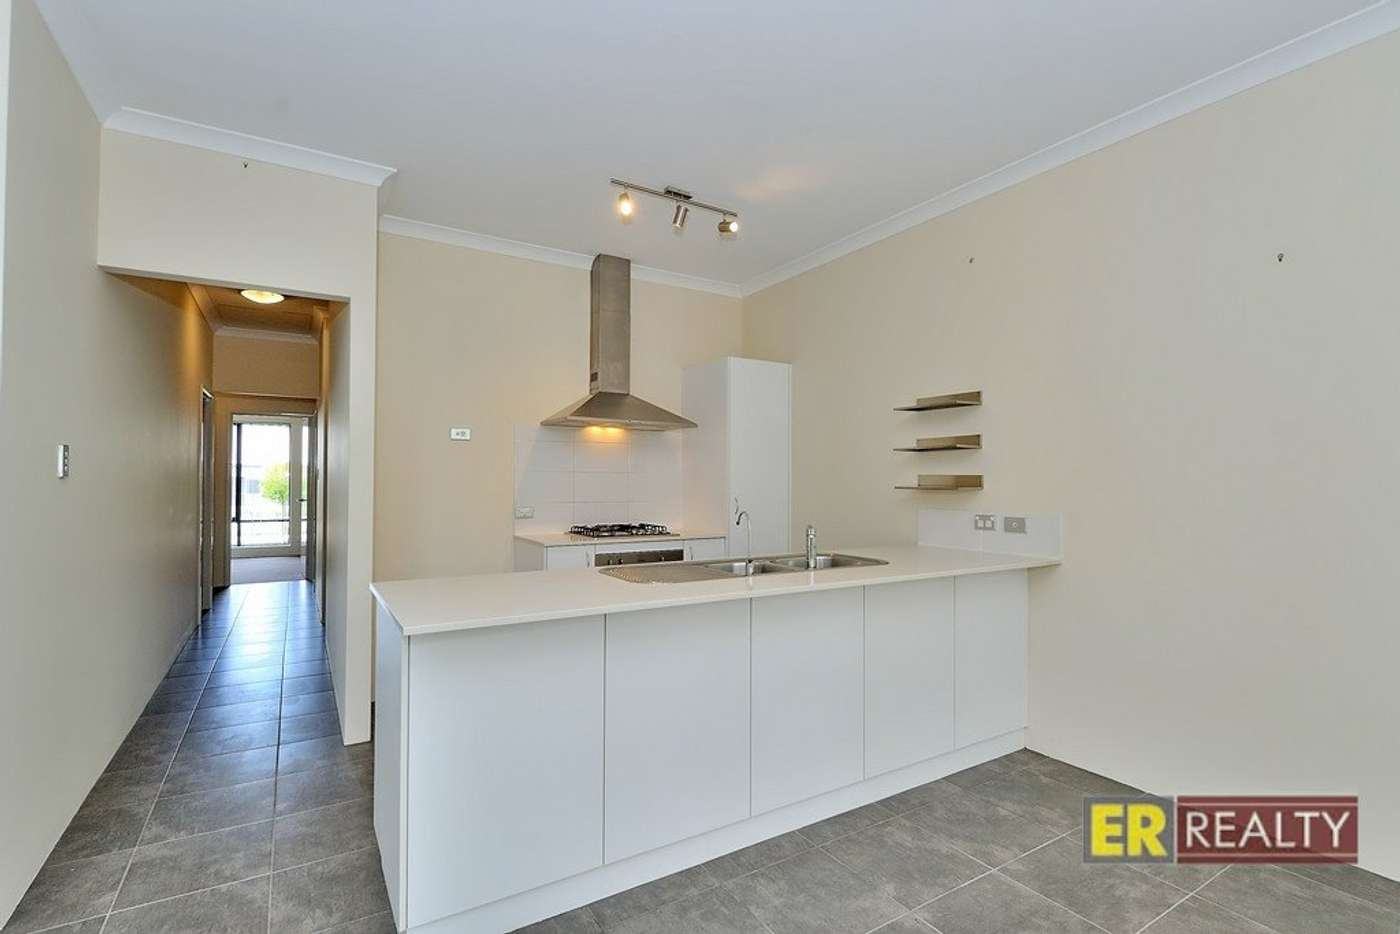 Seventh view of Homely house listing, 56 Maffina Parade, Ellenbrook WA 6069